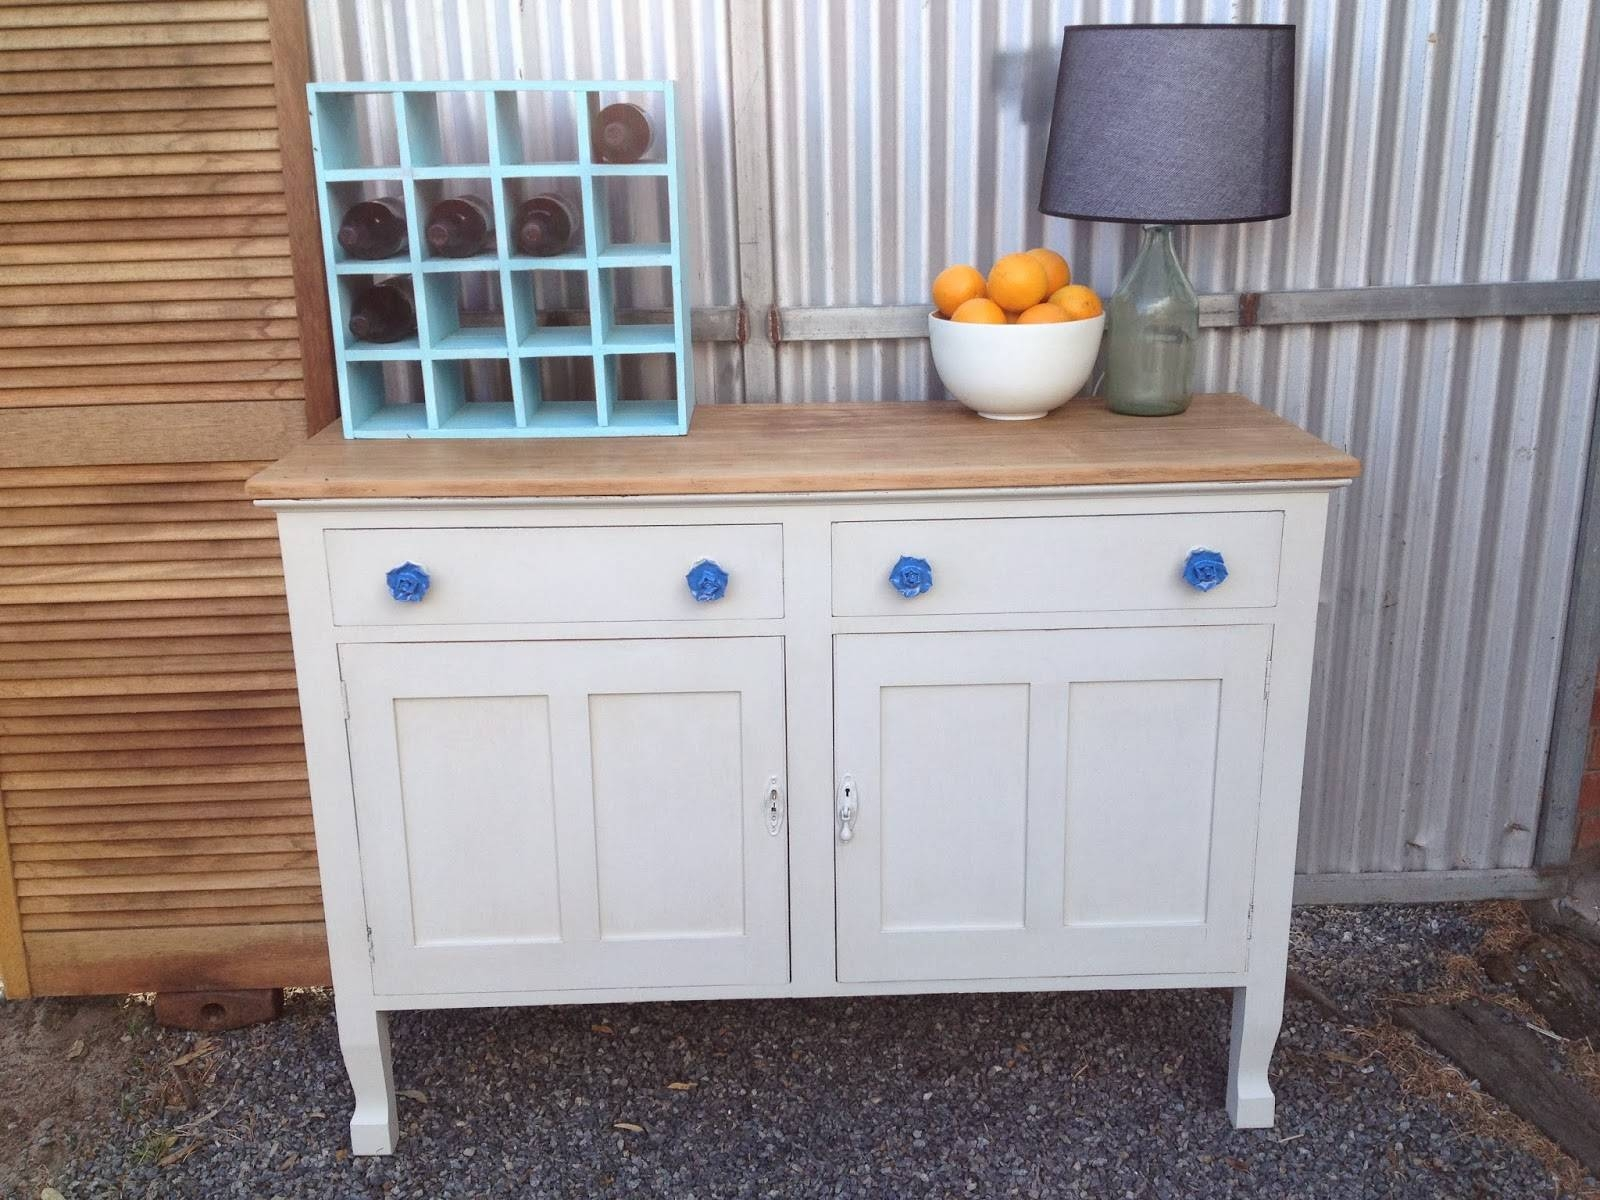 Drip Designs Furniture: Antique White Oak Buffet/sideboard within Antique White Sideboards (Image 3 of 15)